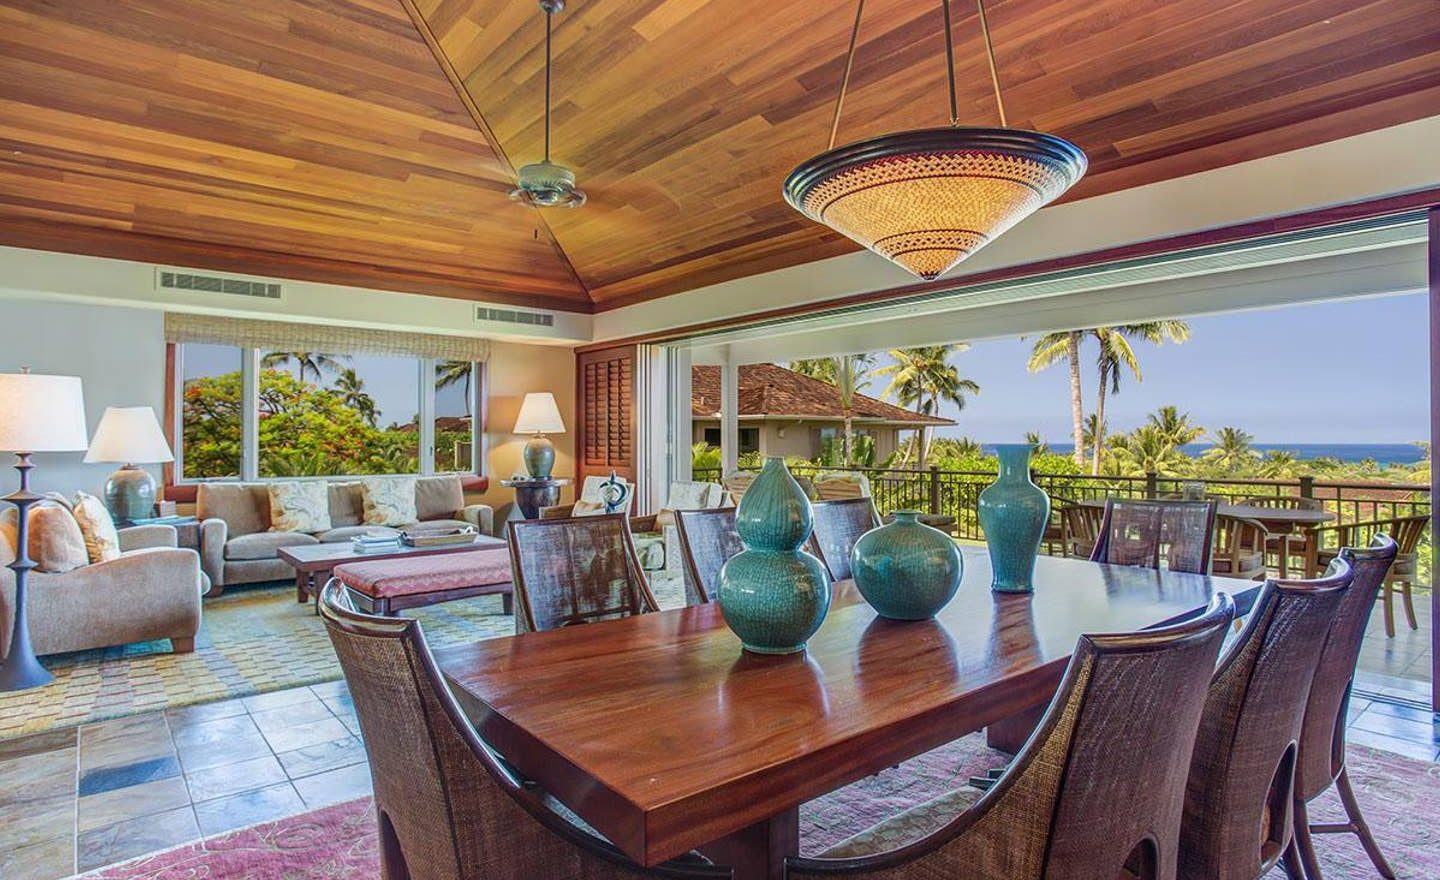 Ke Alaula 210A - Dining area with view of ocean - Hawaii Vacation Home